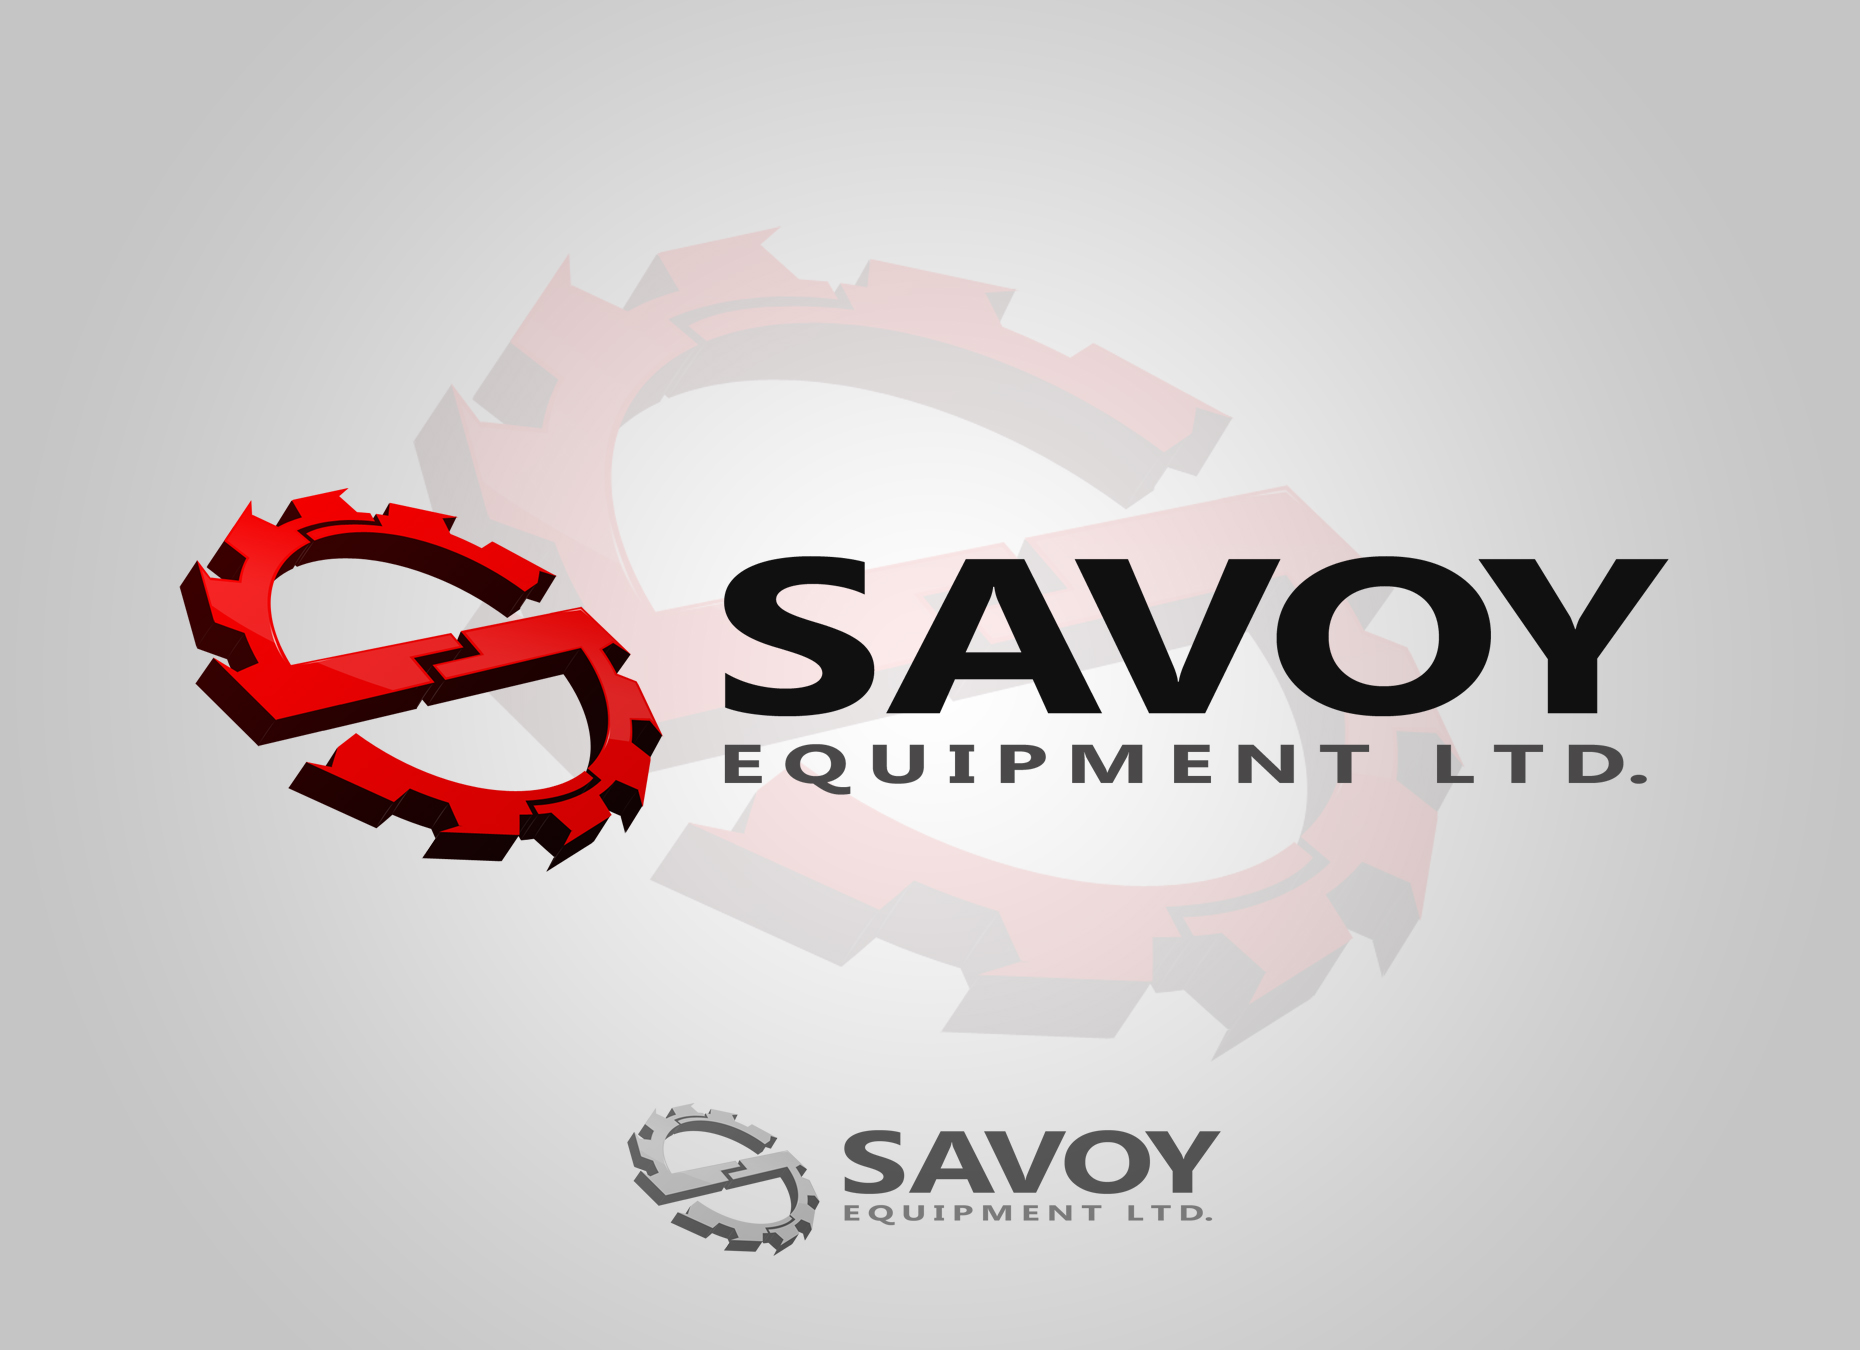 Logo Design by omARTist - Entry No. 115 in the Logo Design Contest Inspiring Logo Design for Savoy Equipment Ltd..